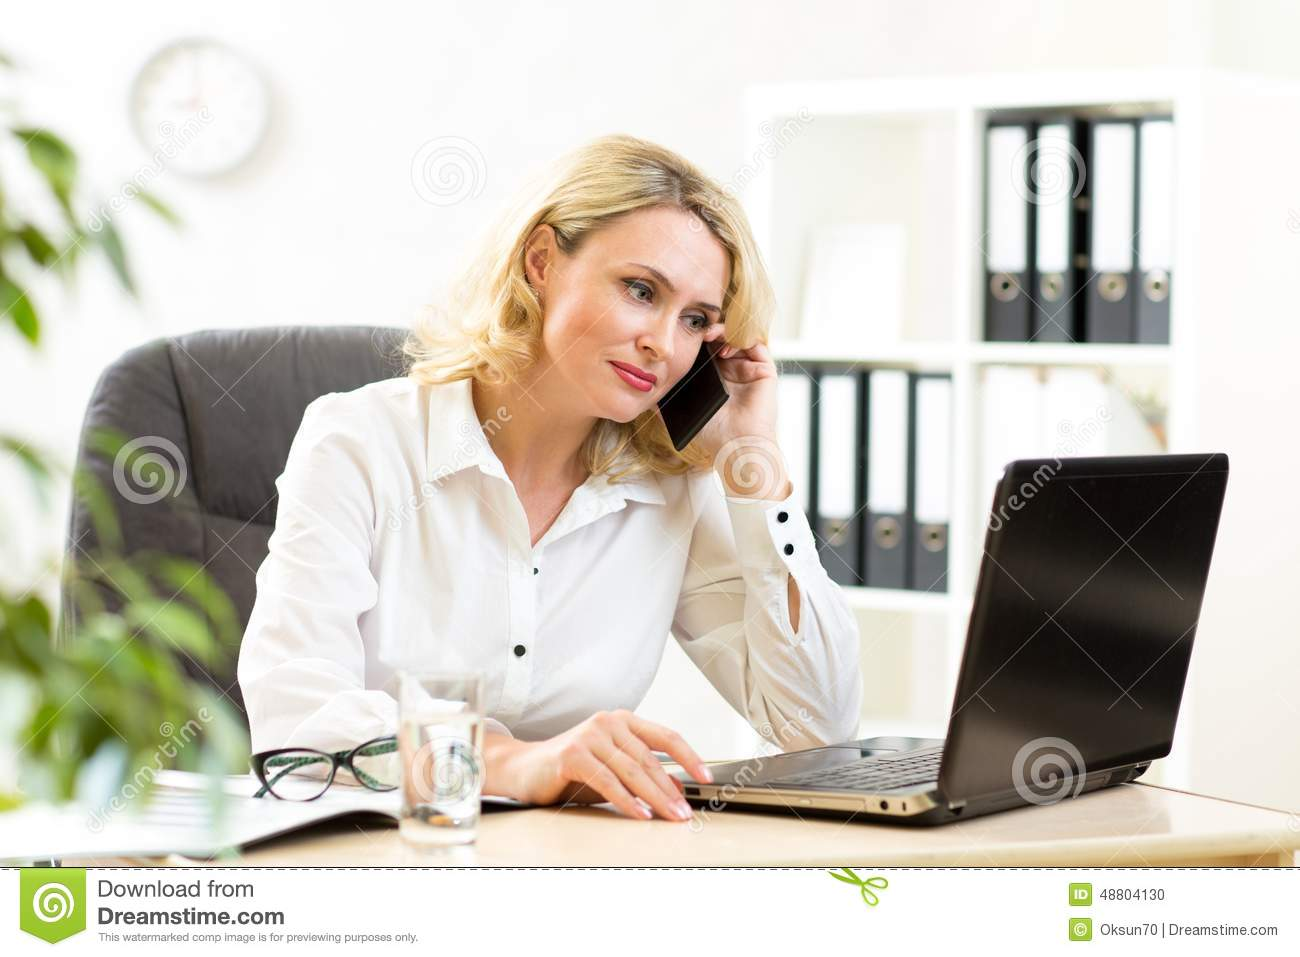 Modern Living Room Interior Design Ideas further Watch in addition Office Layout Symbols likewise Walker Edison Solo Desk In Black D31S29B in addition Stock Photo Cute Middle Aged Business Woman Working Office Businesswoman Lady Talking Mobile Phone Looking Laptop Image48804130. on office max desk glass